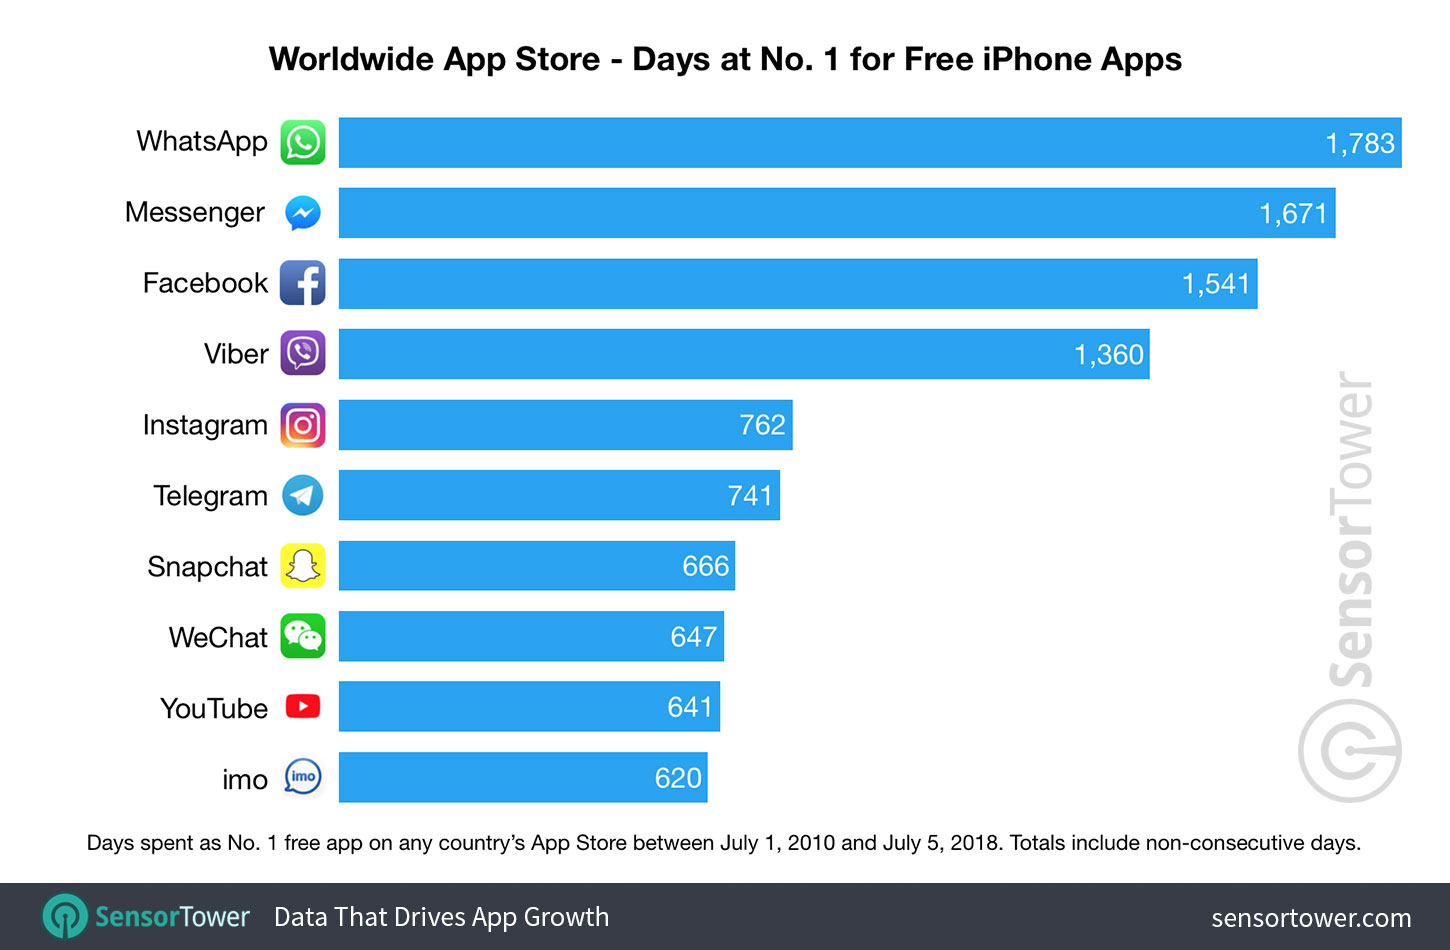 Top iPhone free apps